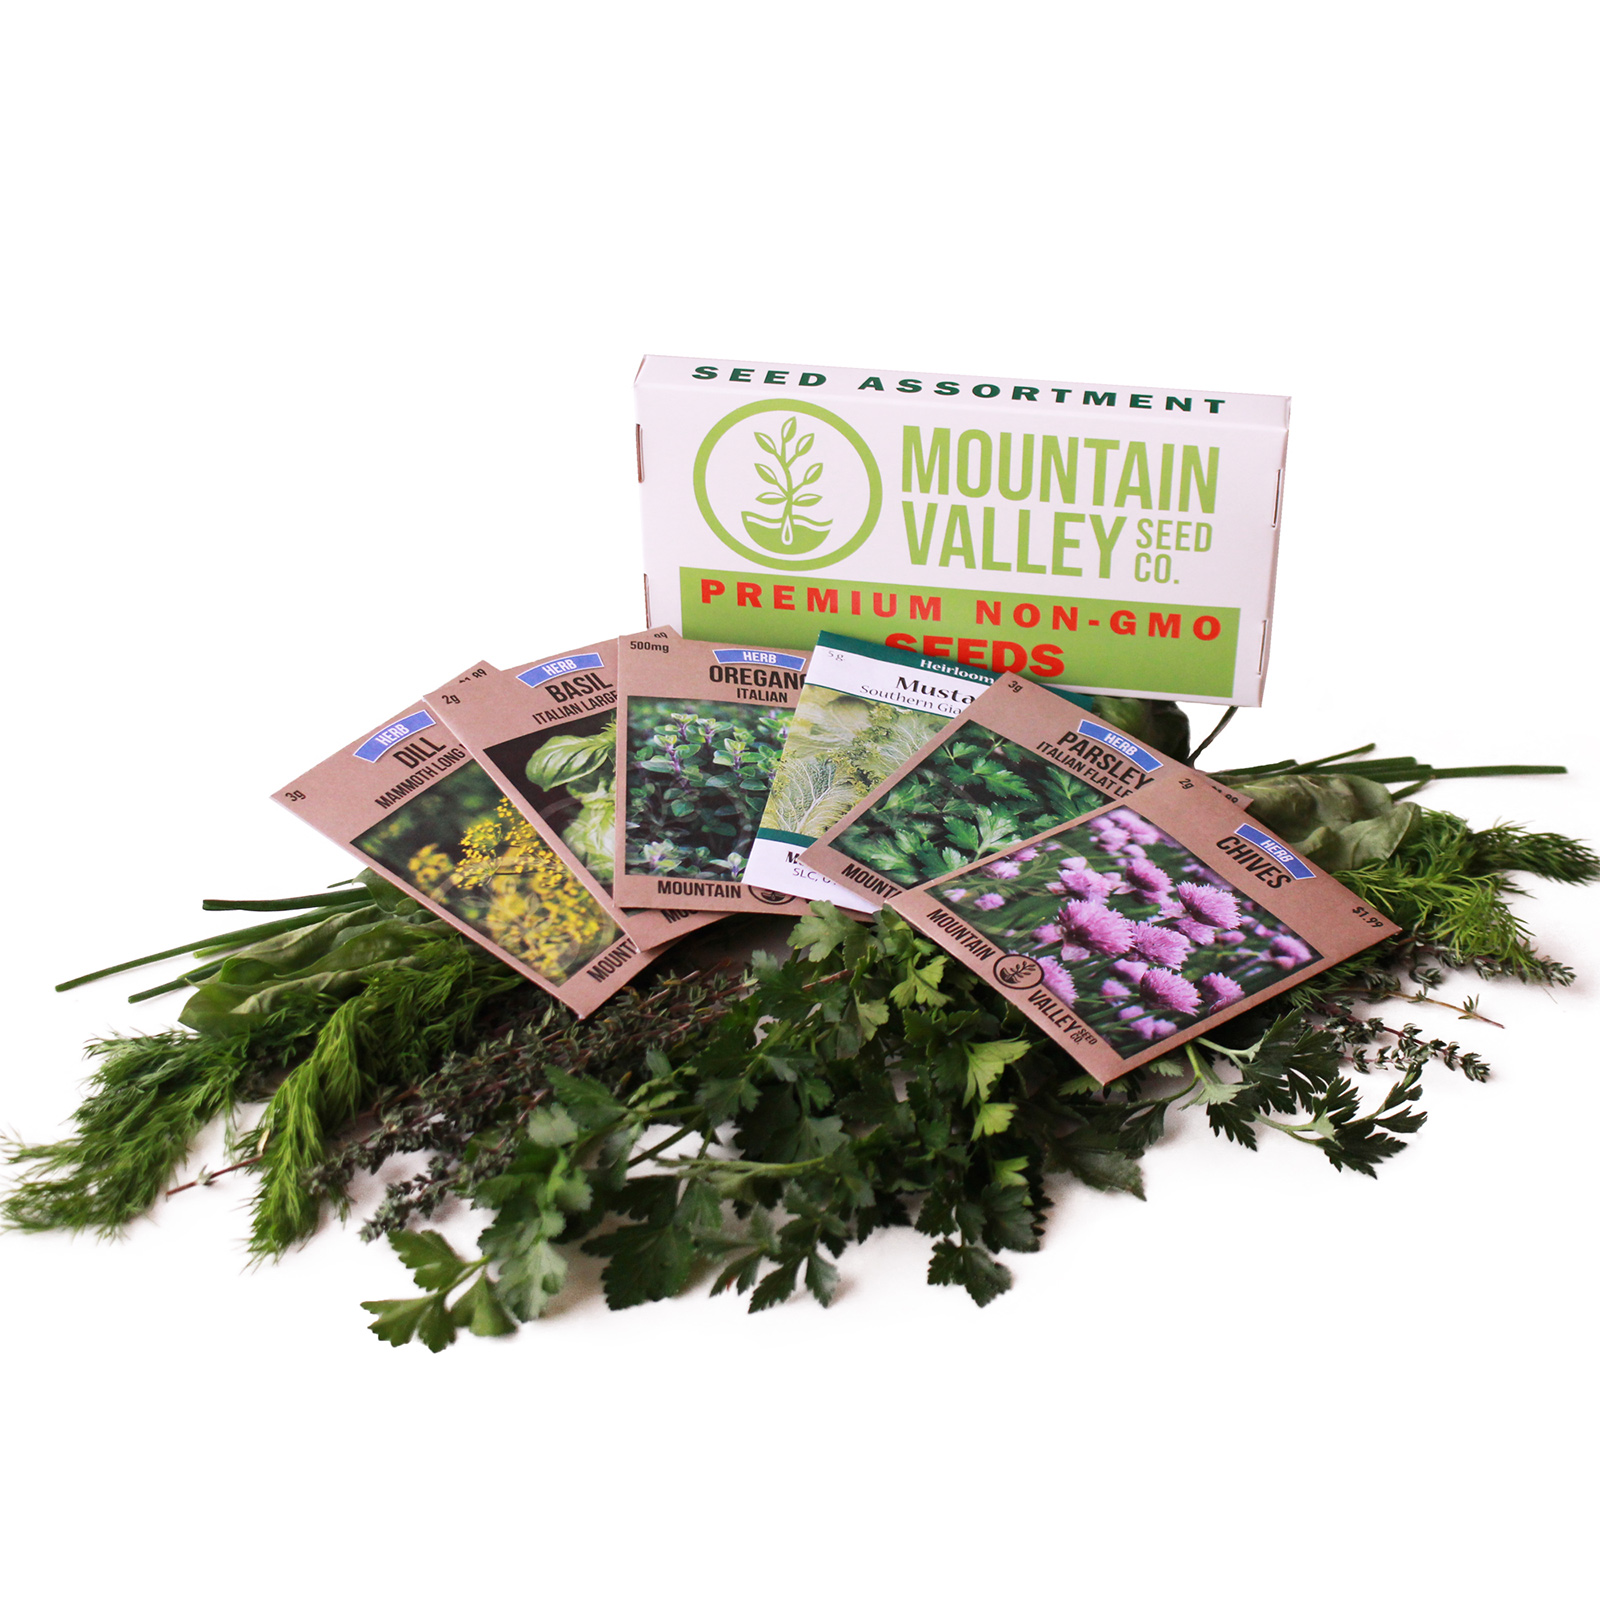 Kitchen Herb Gardens That Will Make Cooking Wonderful: Culinary Herb Seed Assortment